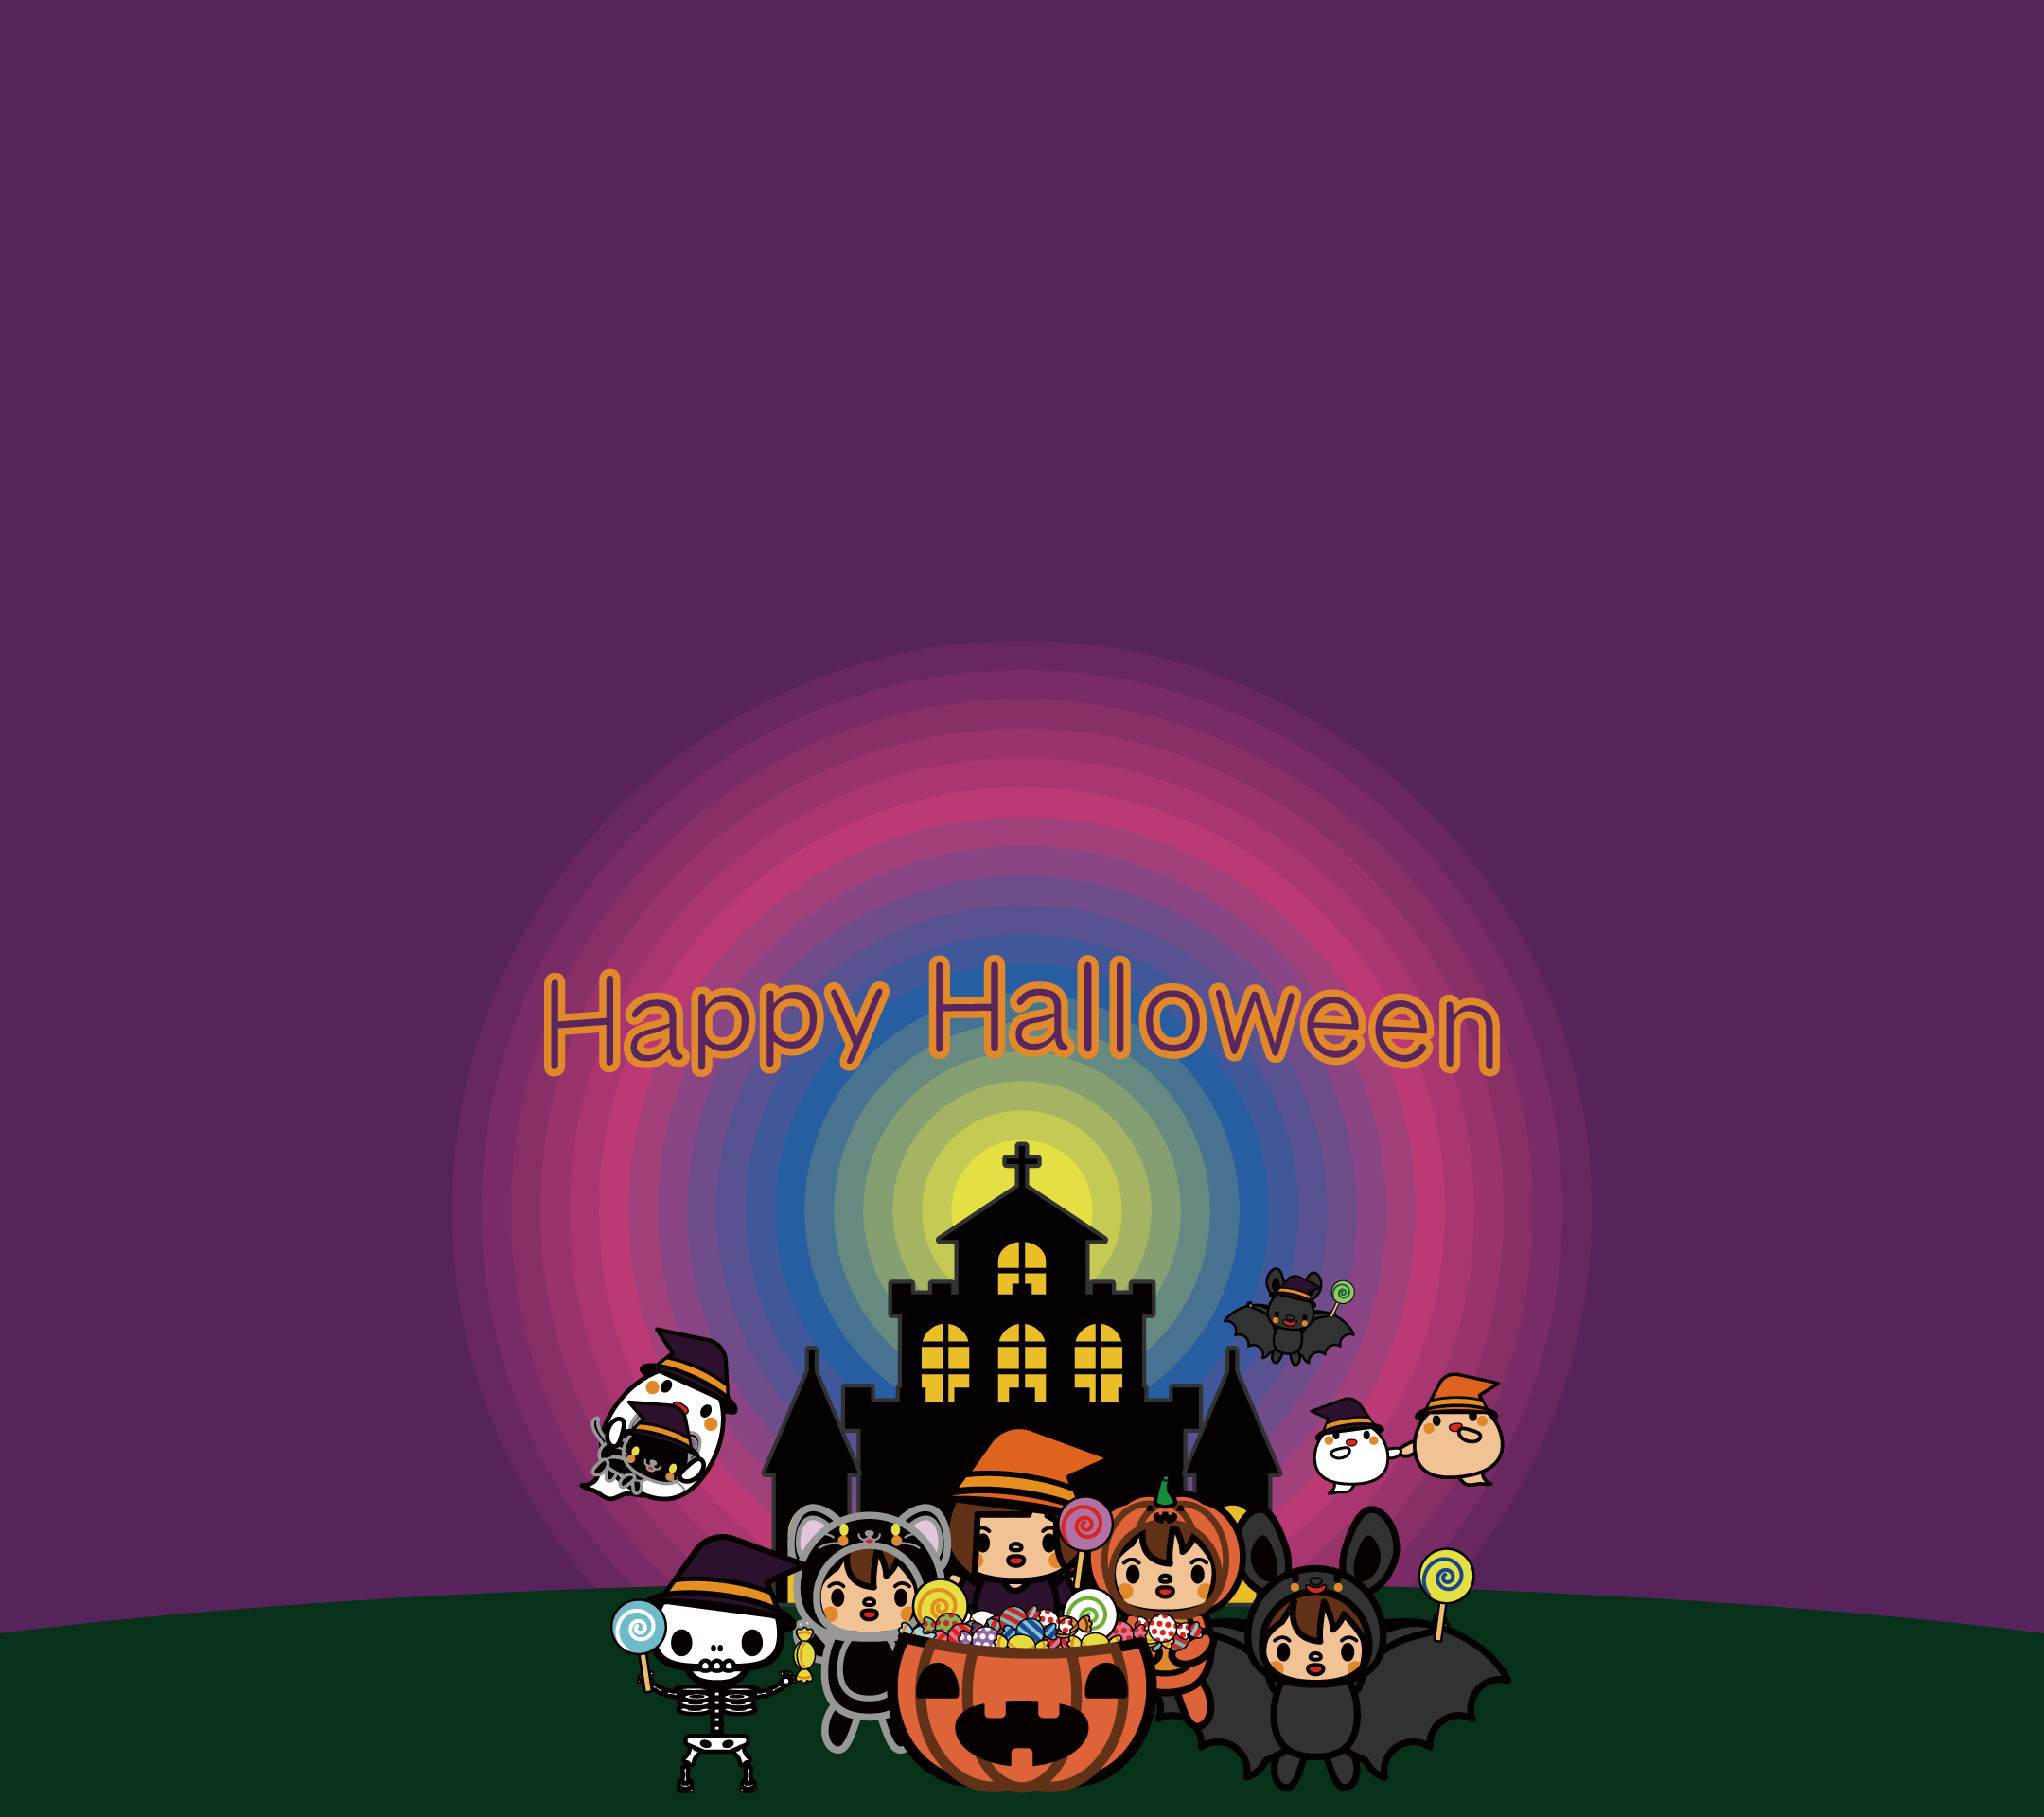 wallpaper1_happy-halloween-android